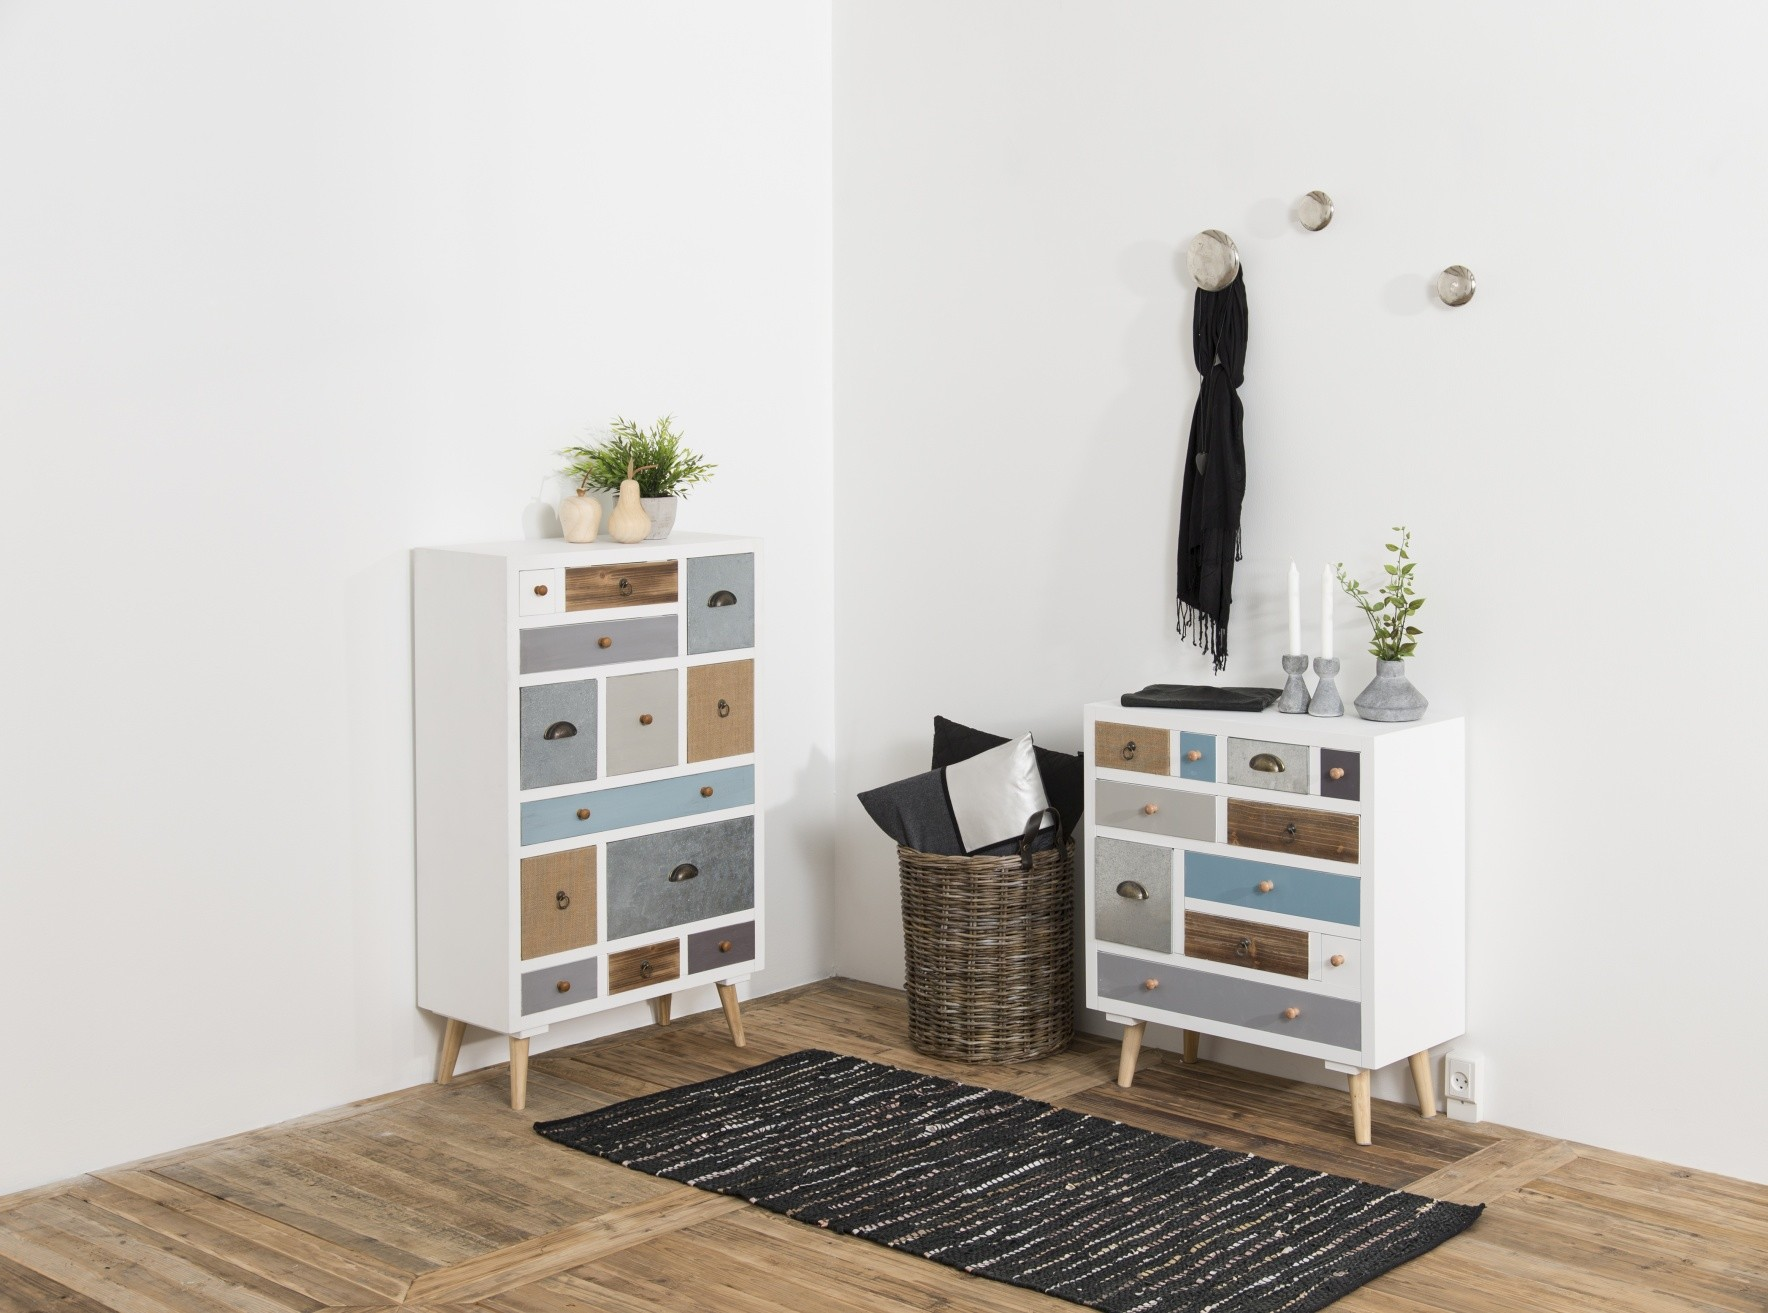 24Designs Ladekast Finn - 13 Laden - 70x30x114 - Multikleur